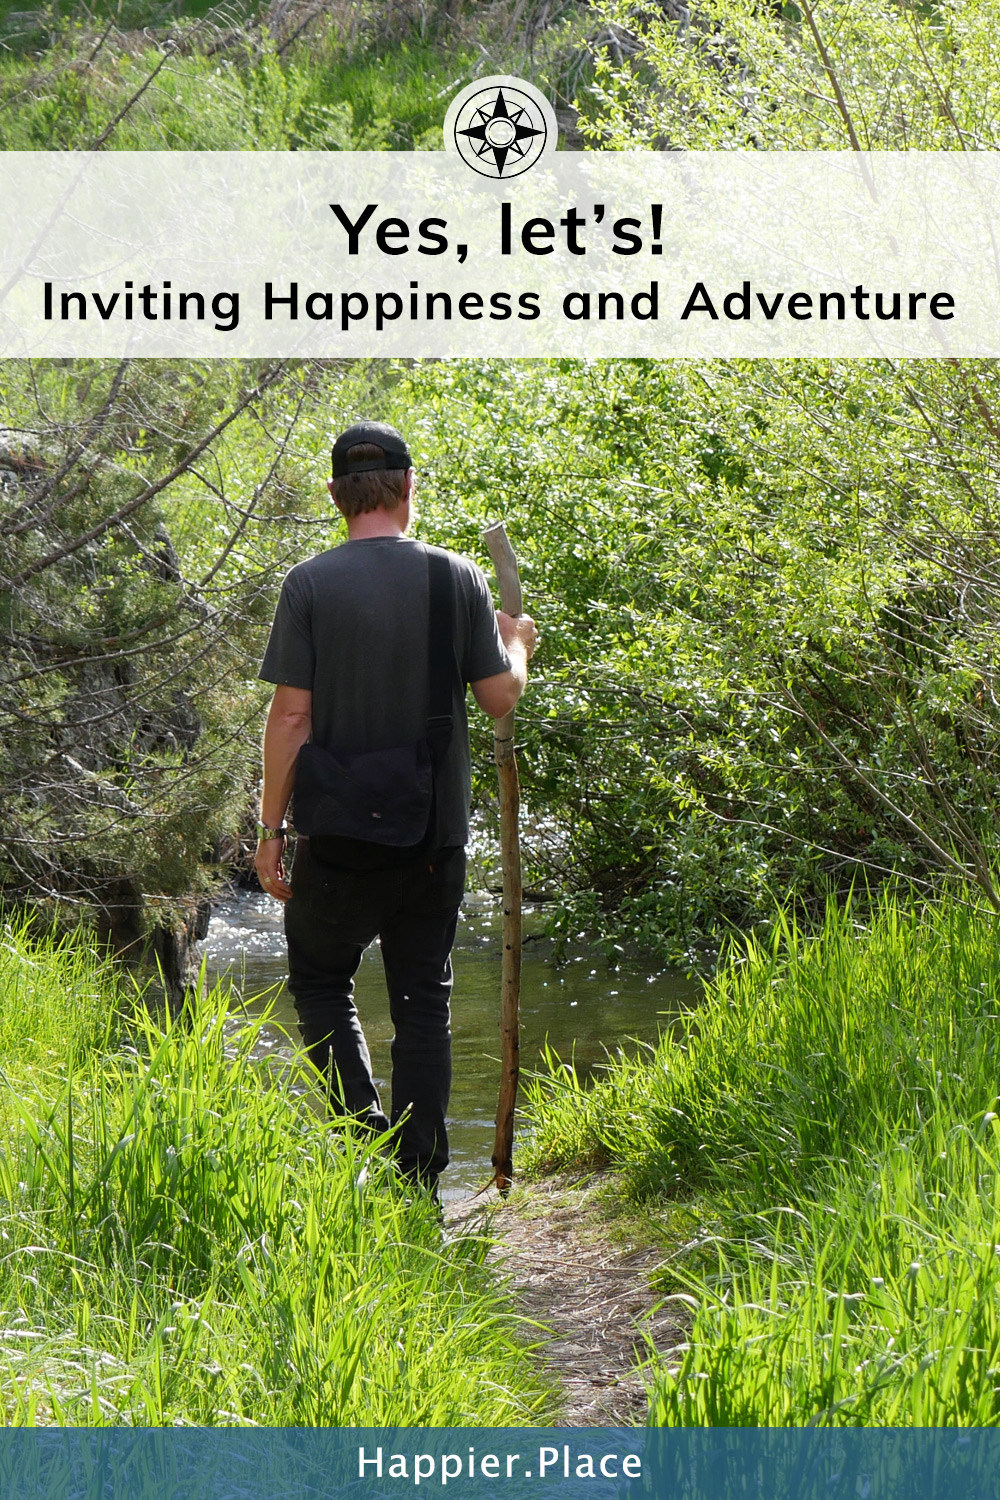 hiking, man, trail, creek, Inviting Happiness and Adventure: Yes, let's! - #HappierPlace